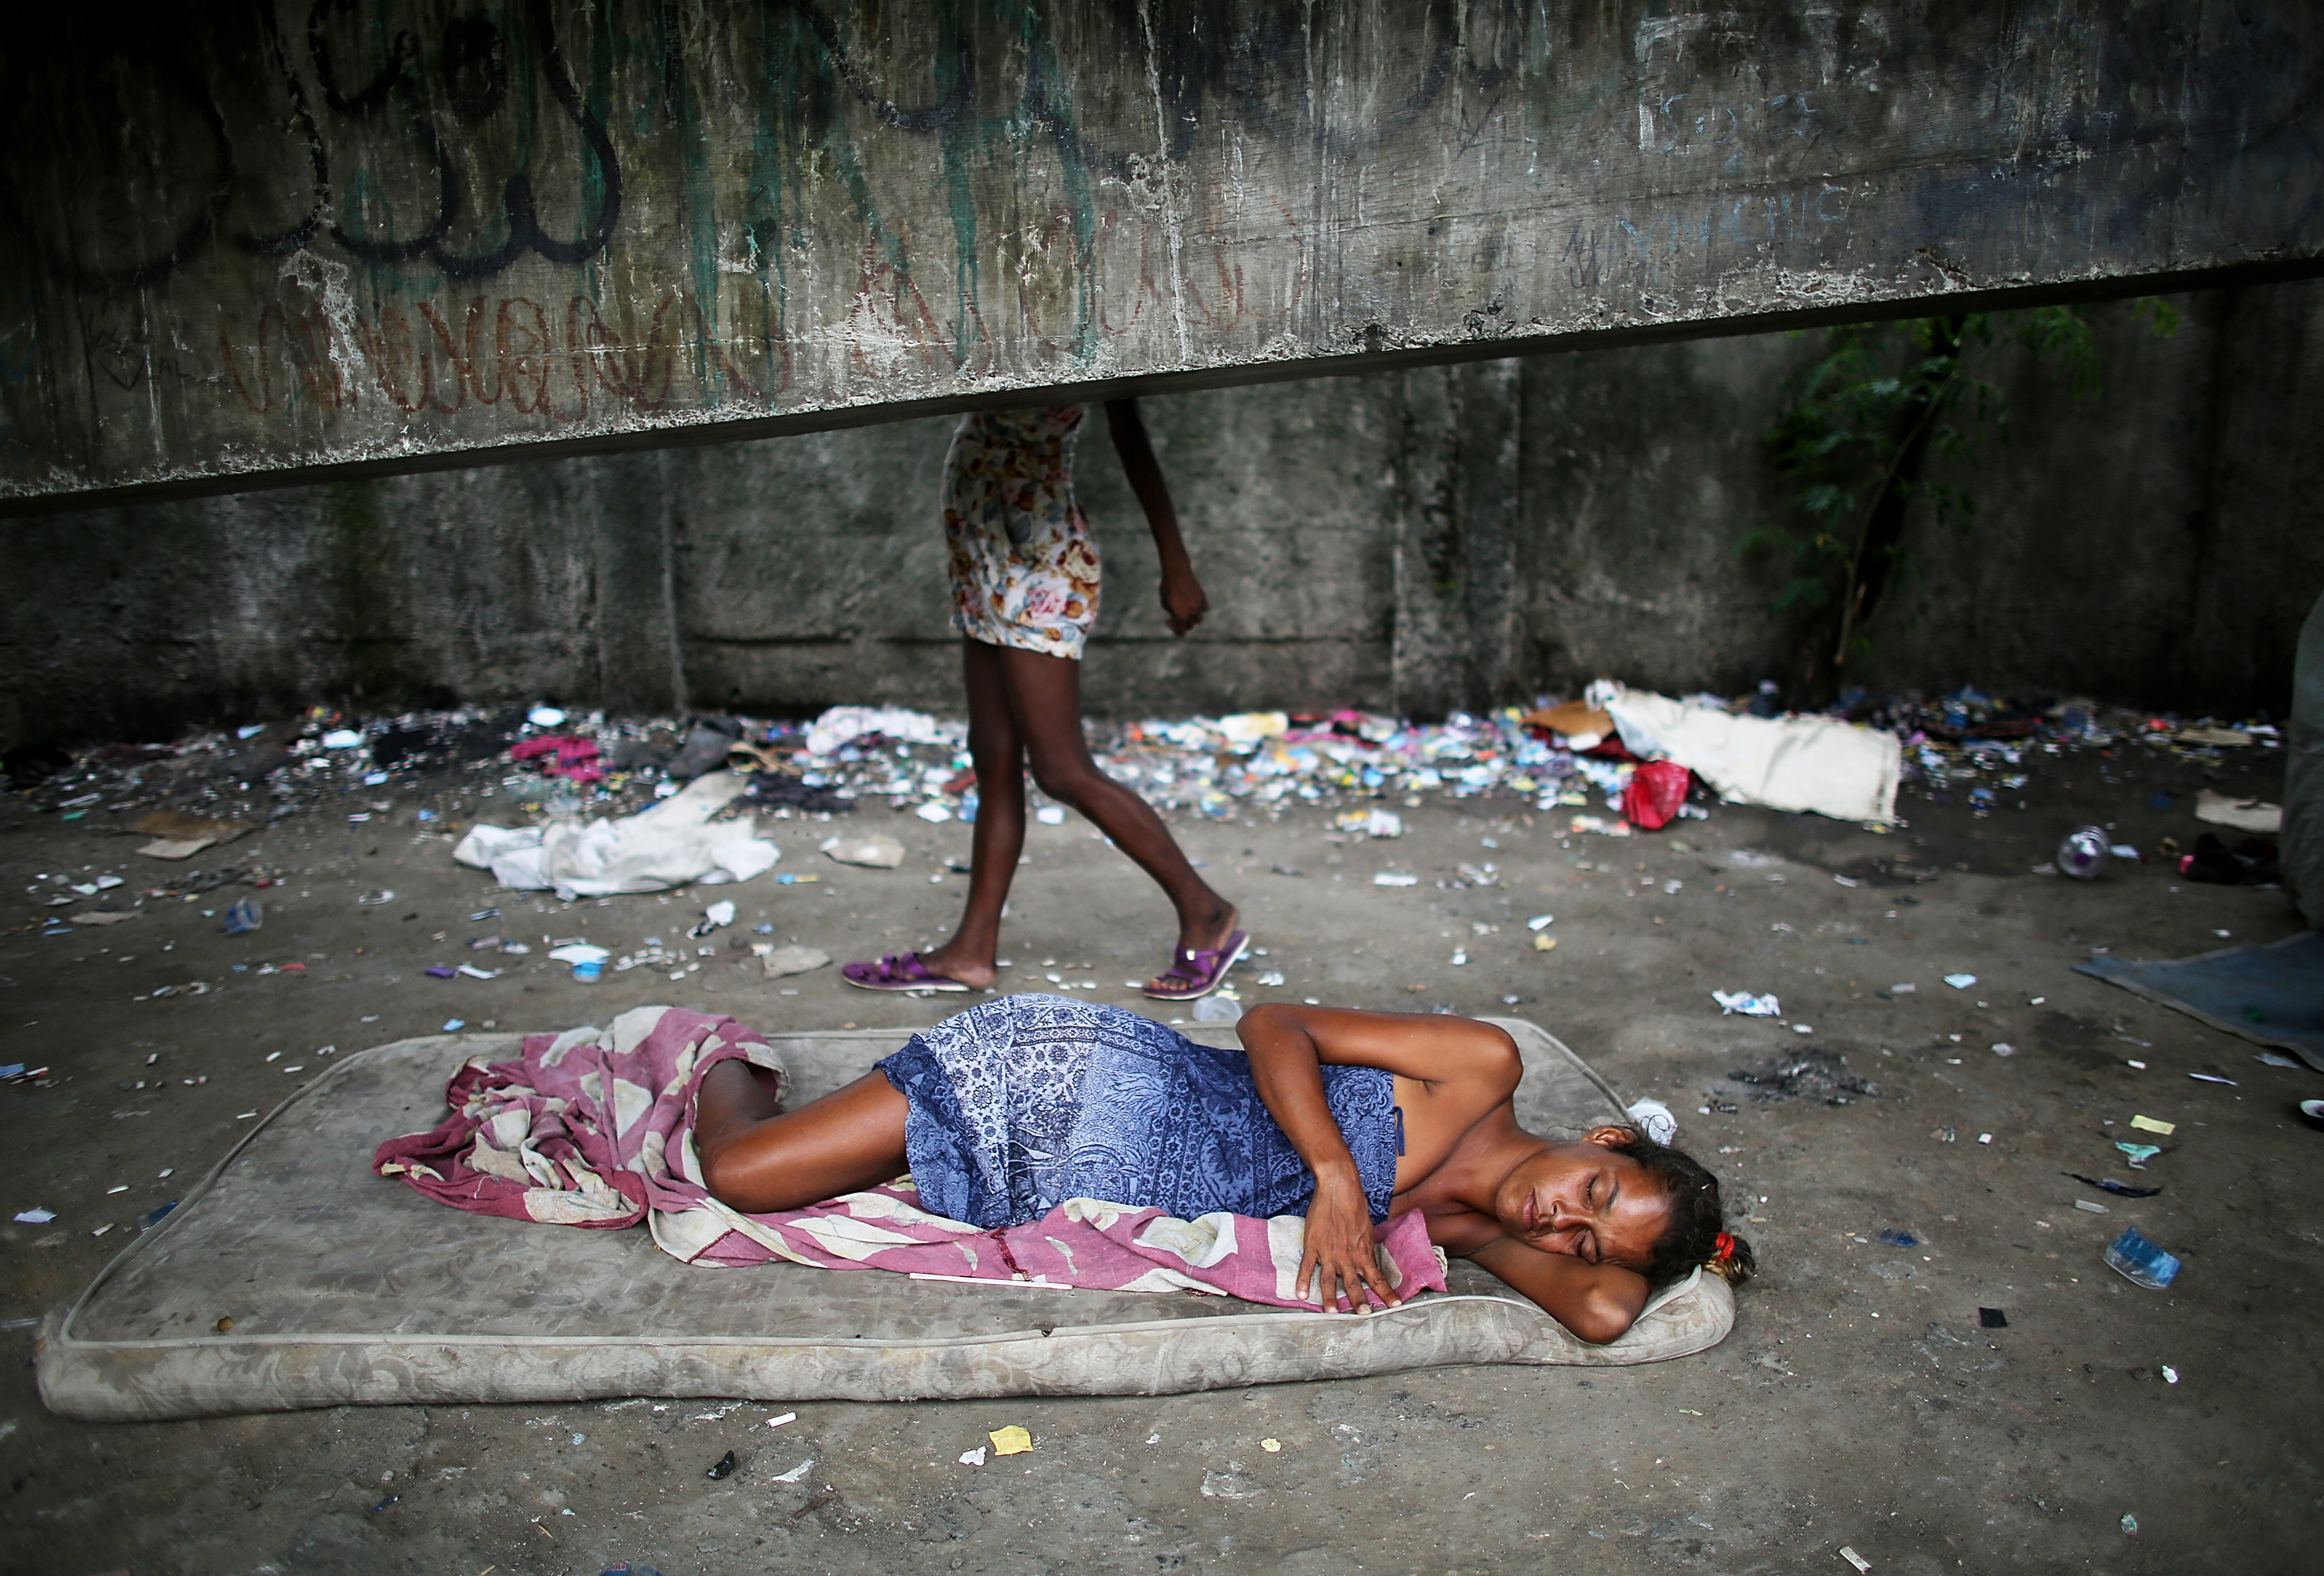 Drug users gather beneath an overpass in an area known as 'Cracolandia', or Crackland, in the Antares shantytown on December 10, 2013 in Rio de Janeiro, Brazil.